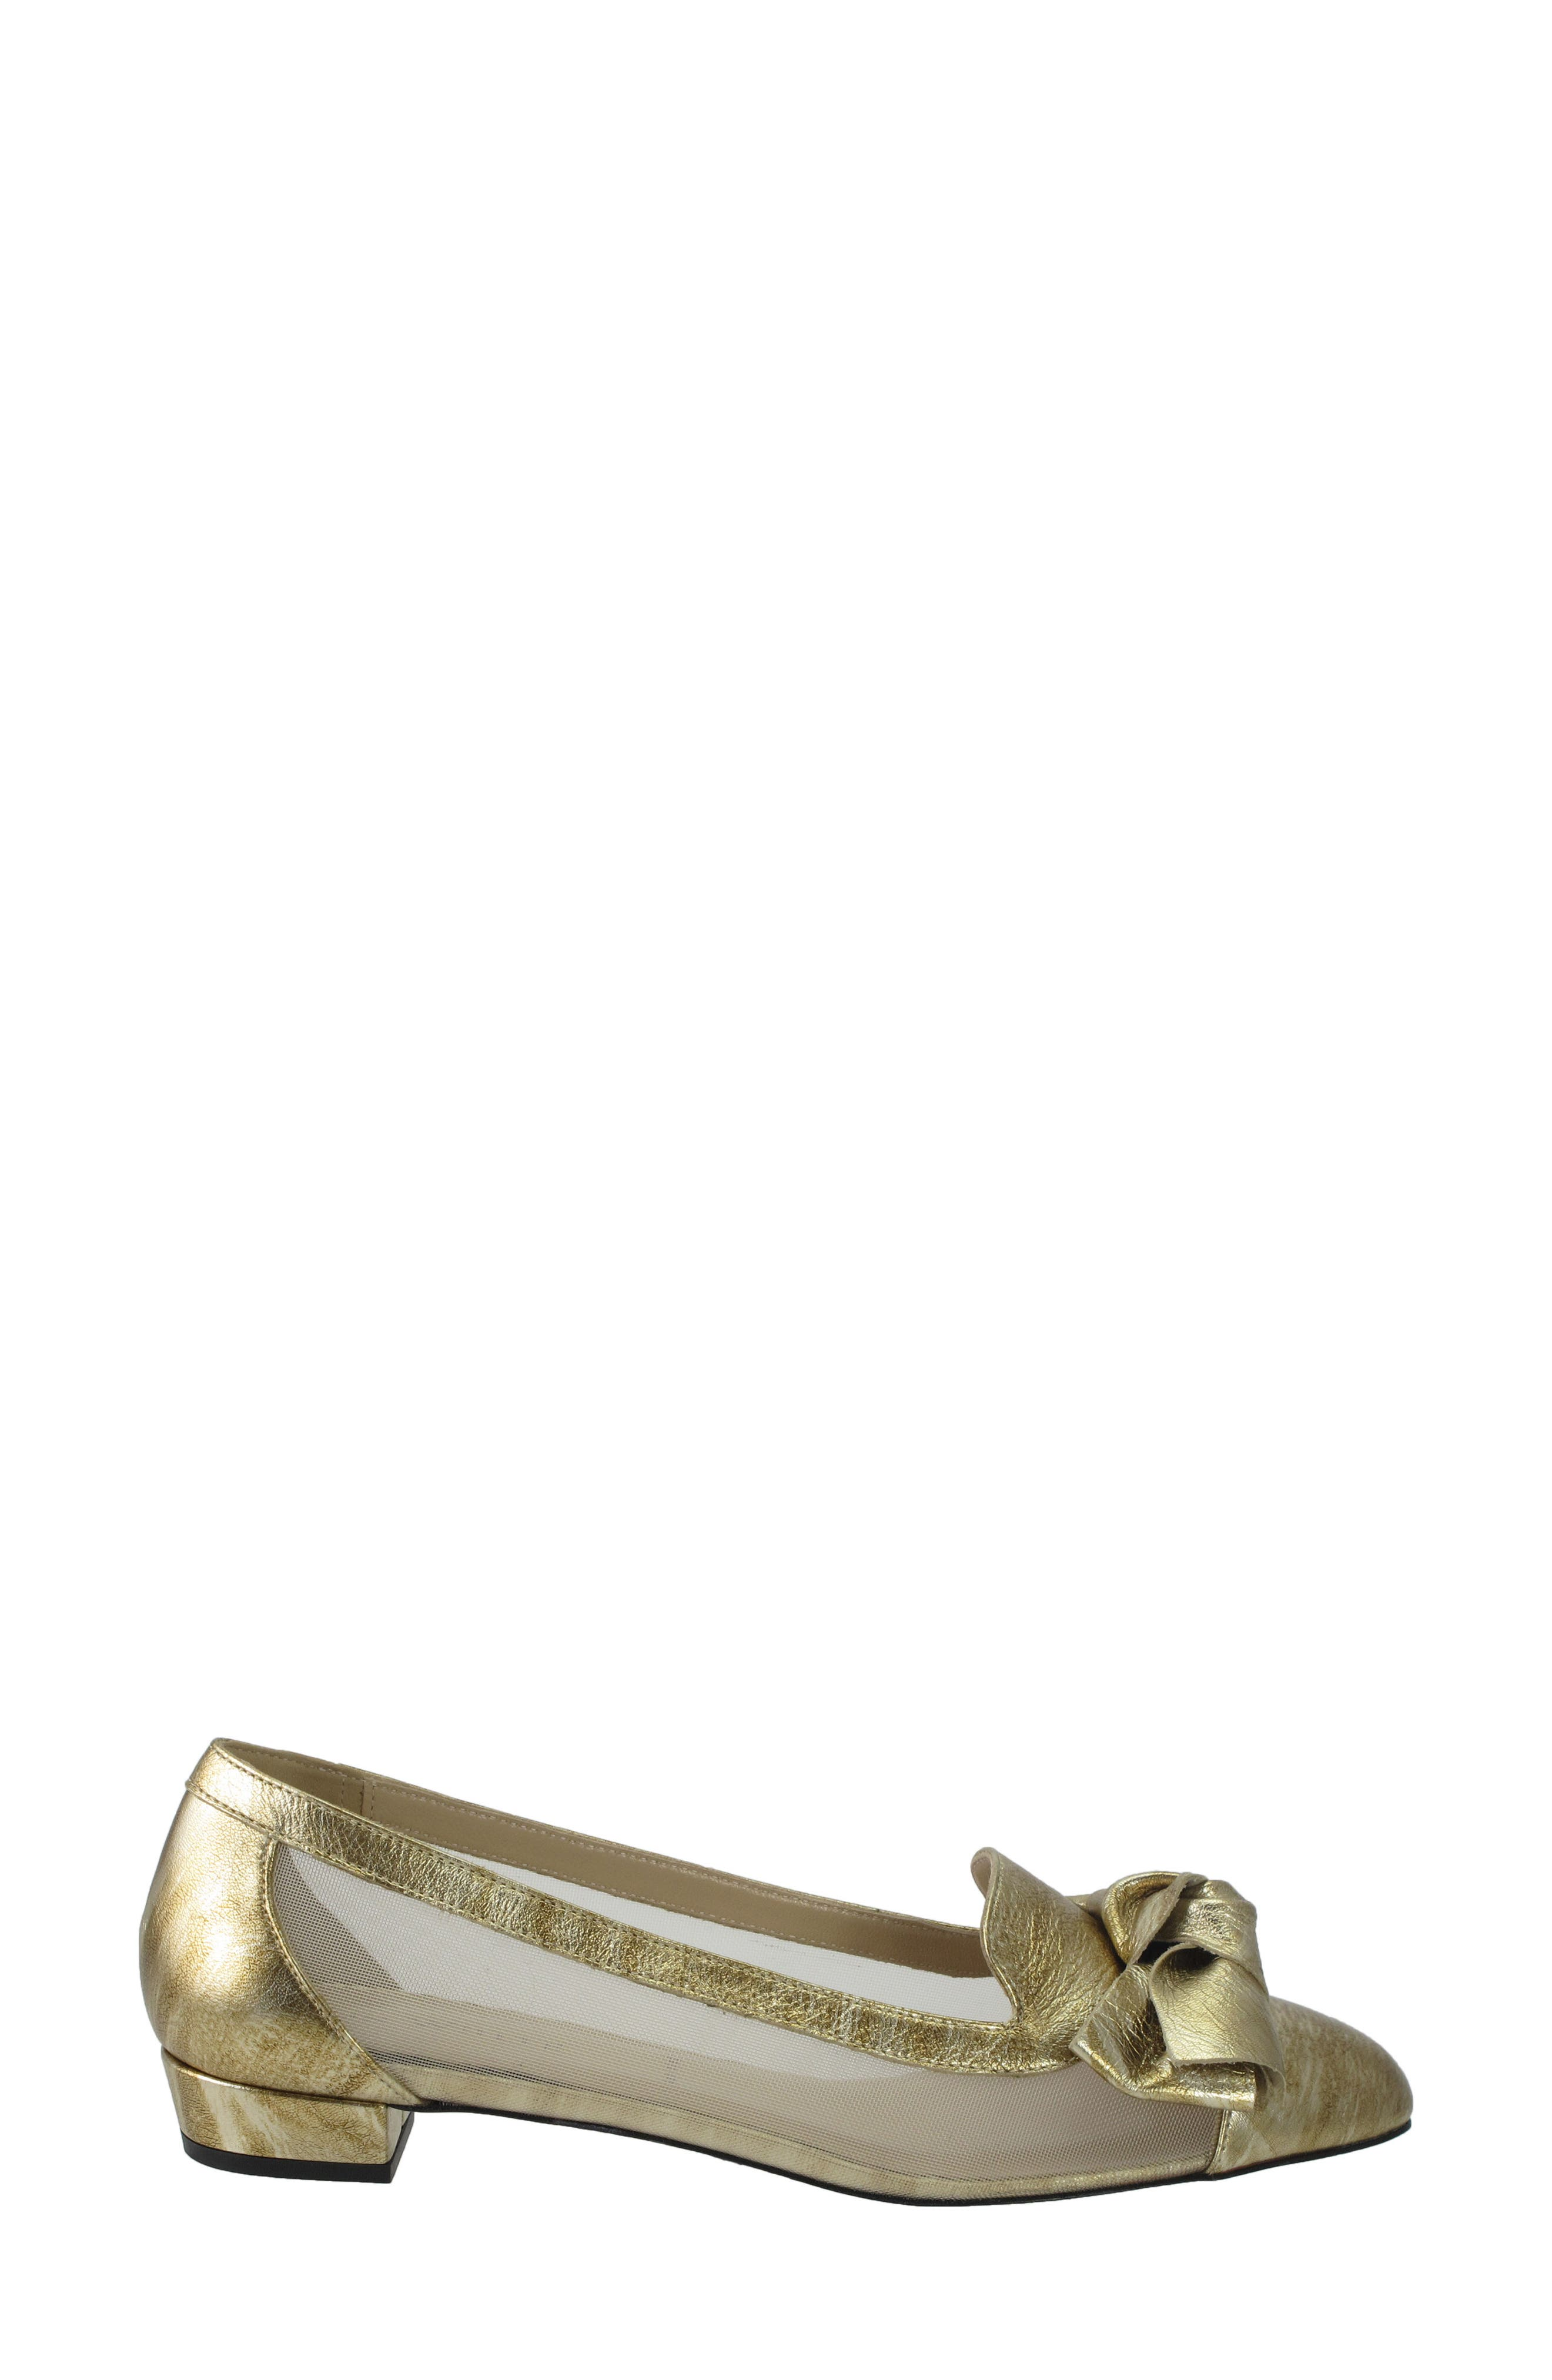 Hetti Bow Pump,                             Alternate thumbnail 3, color,                             ROSE GOLD LEATHER